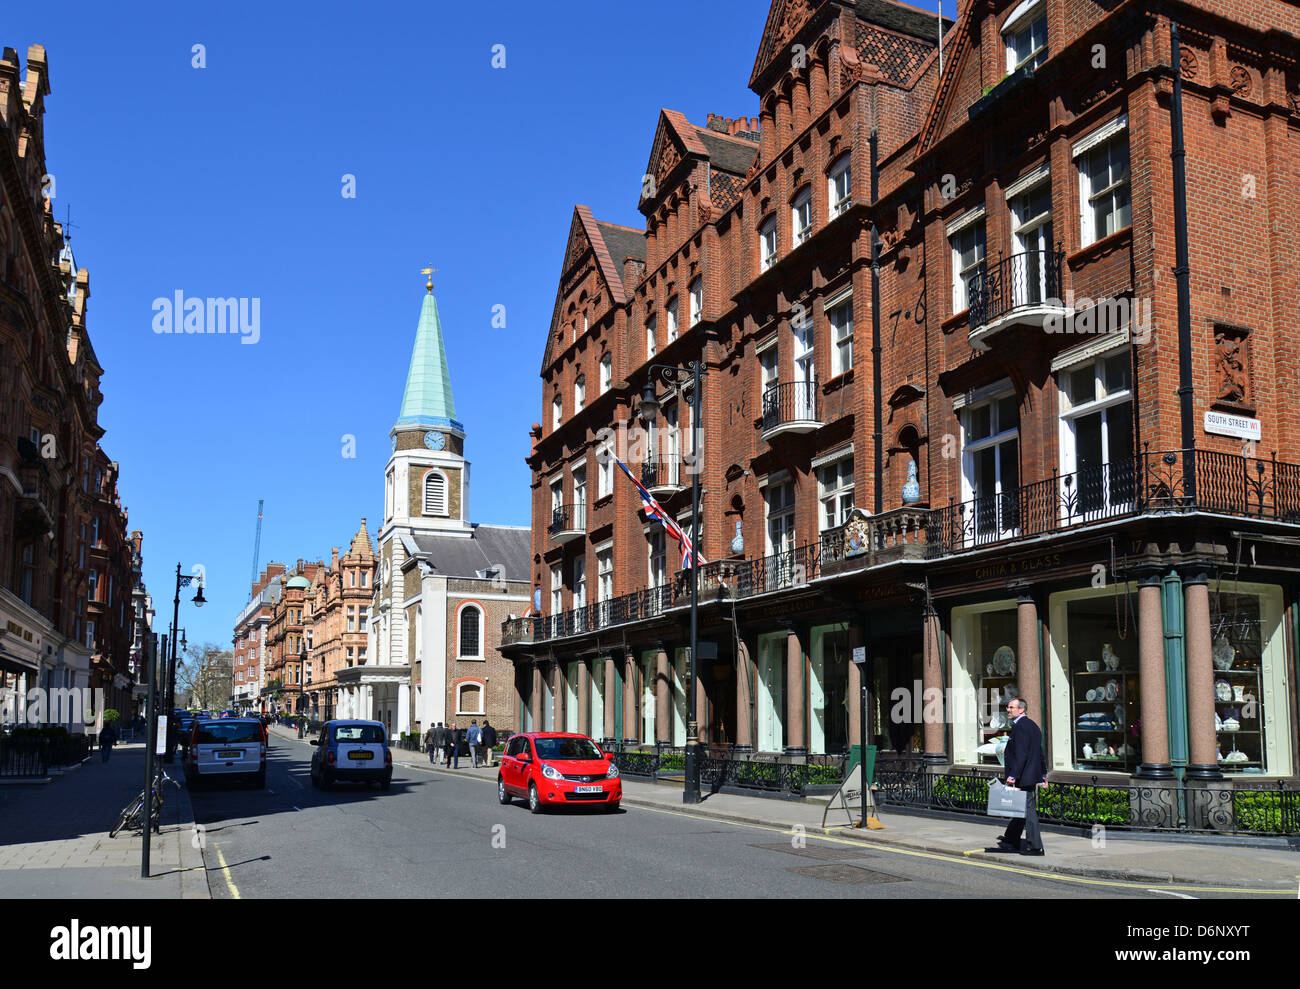 Street scene showing Grosvenor Chapel, South Audley Street, Mayfair, City of Westminster, London, England, United - Stock Image